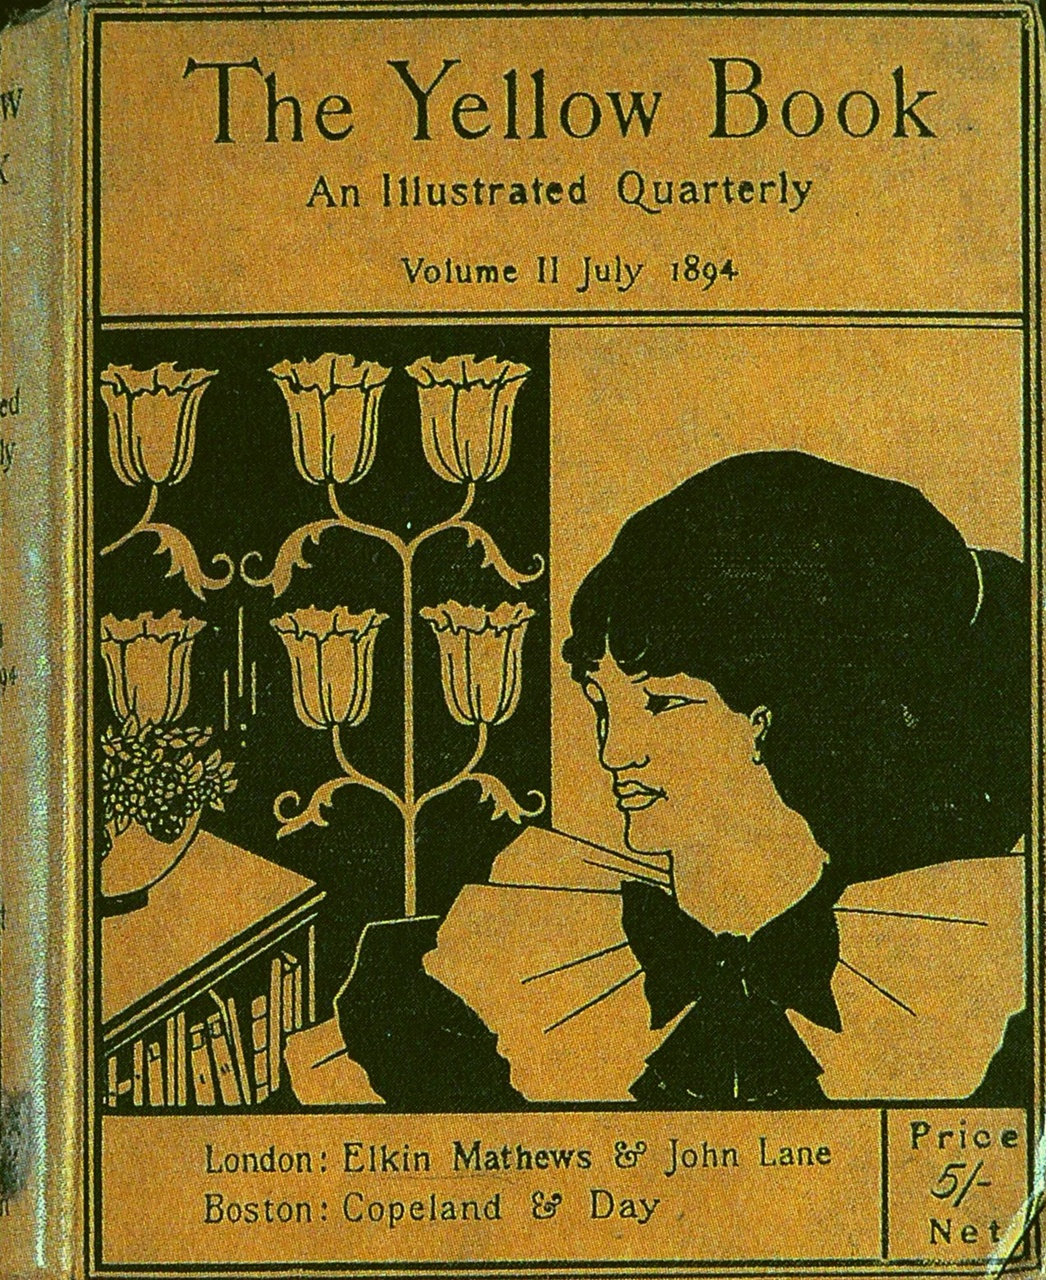 The cover of The Yellow BookAubrey Beardsley The Yellow Book